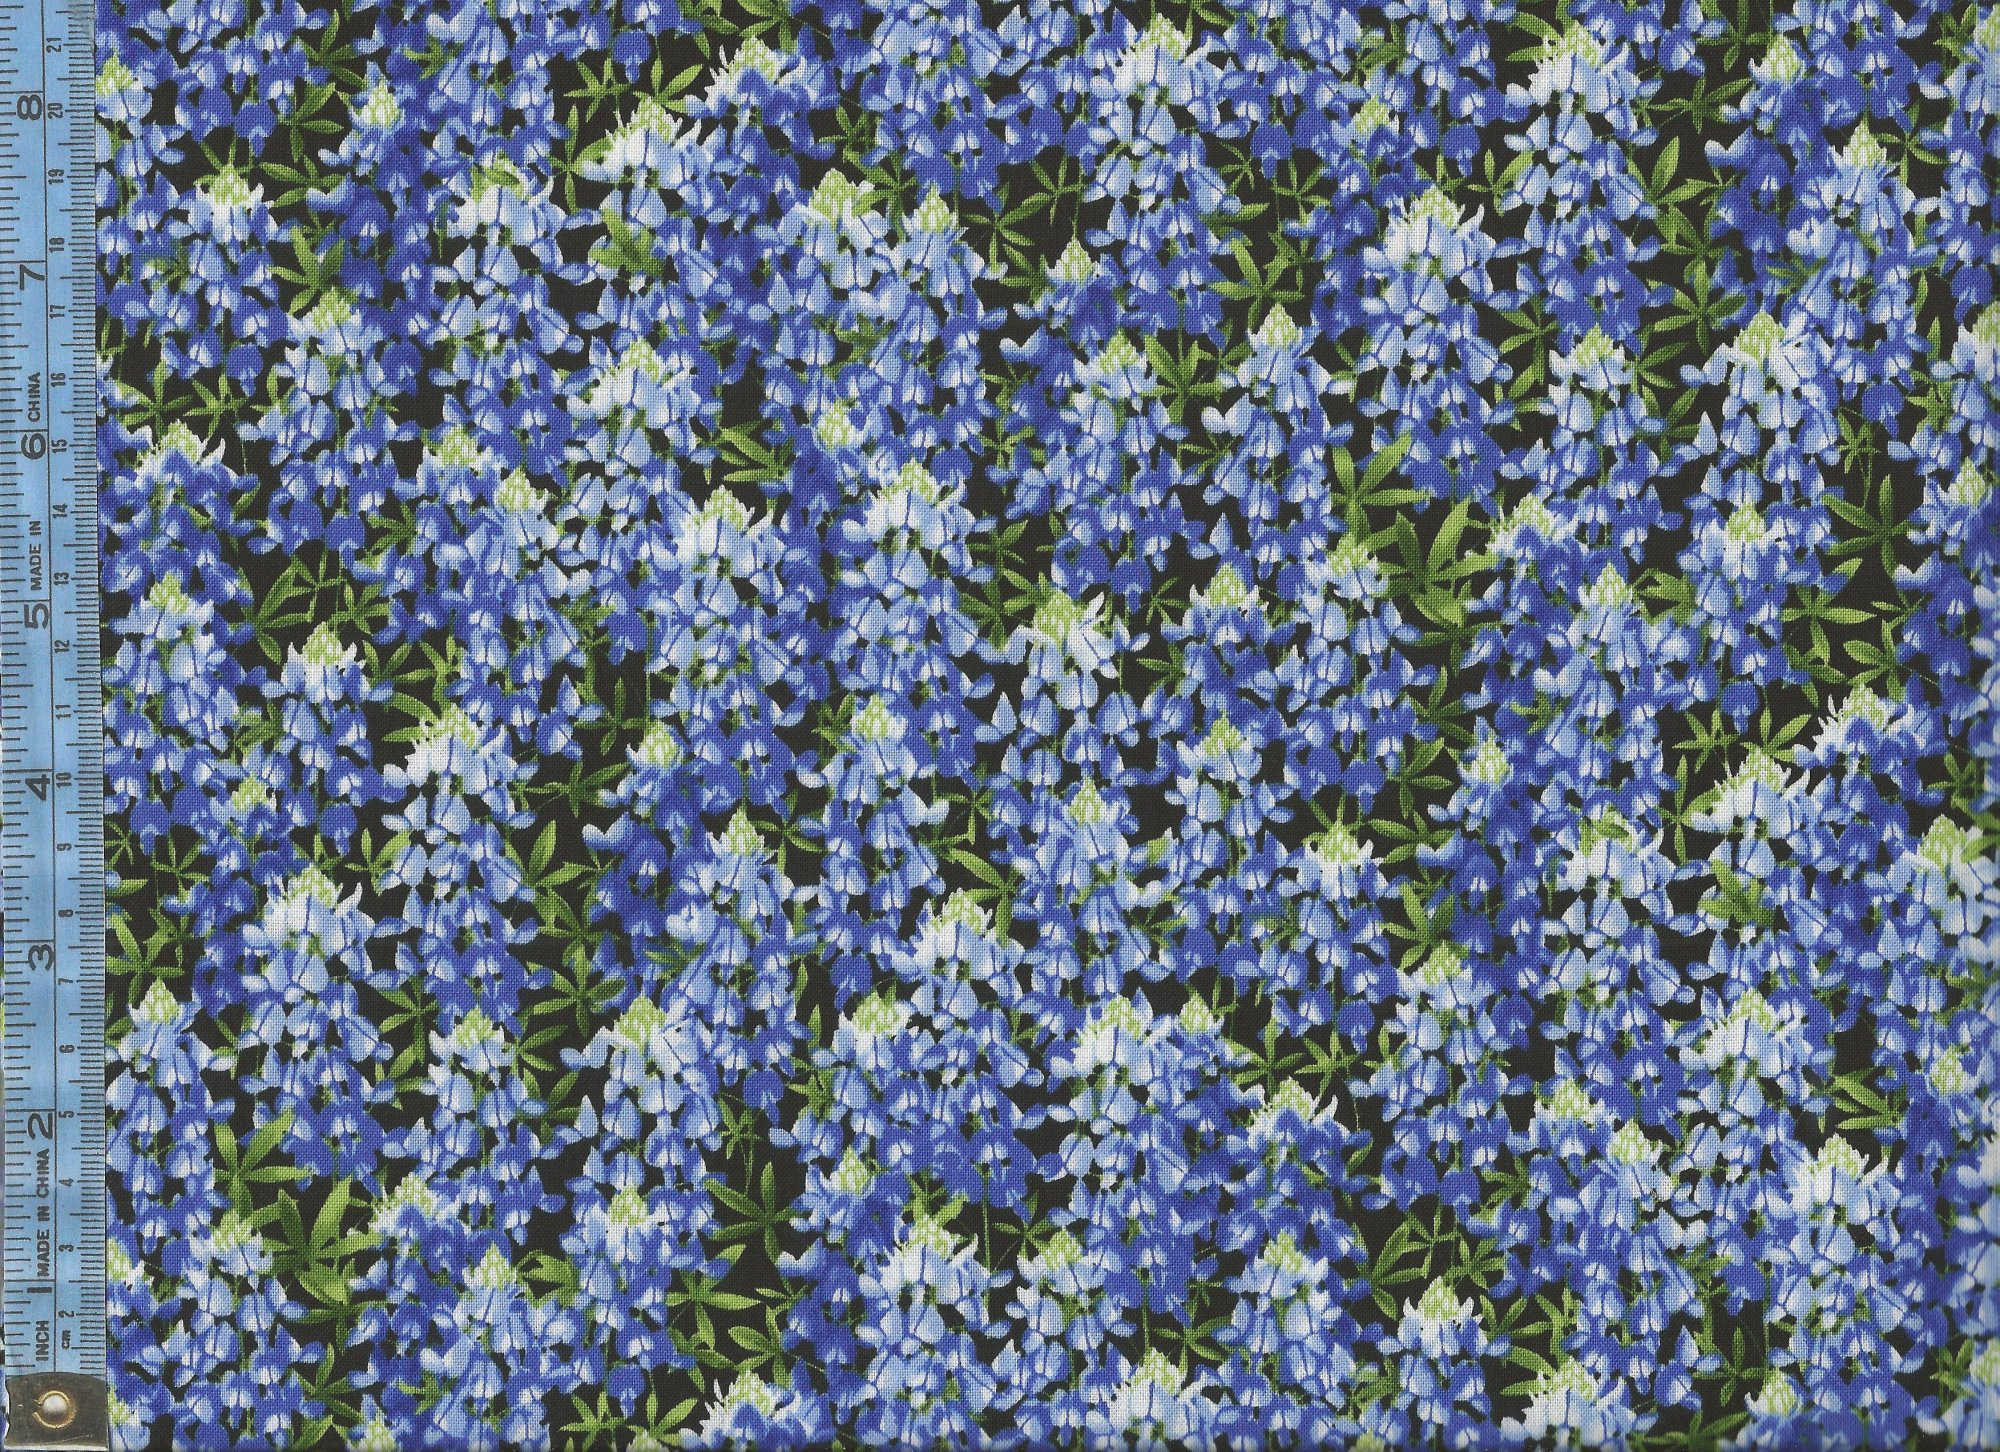 Wildflowers Blue And White Flowers Bluebonnet With Green Leaves